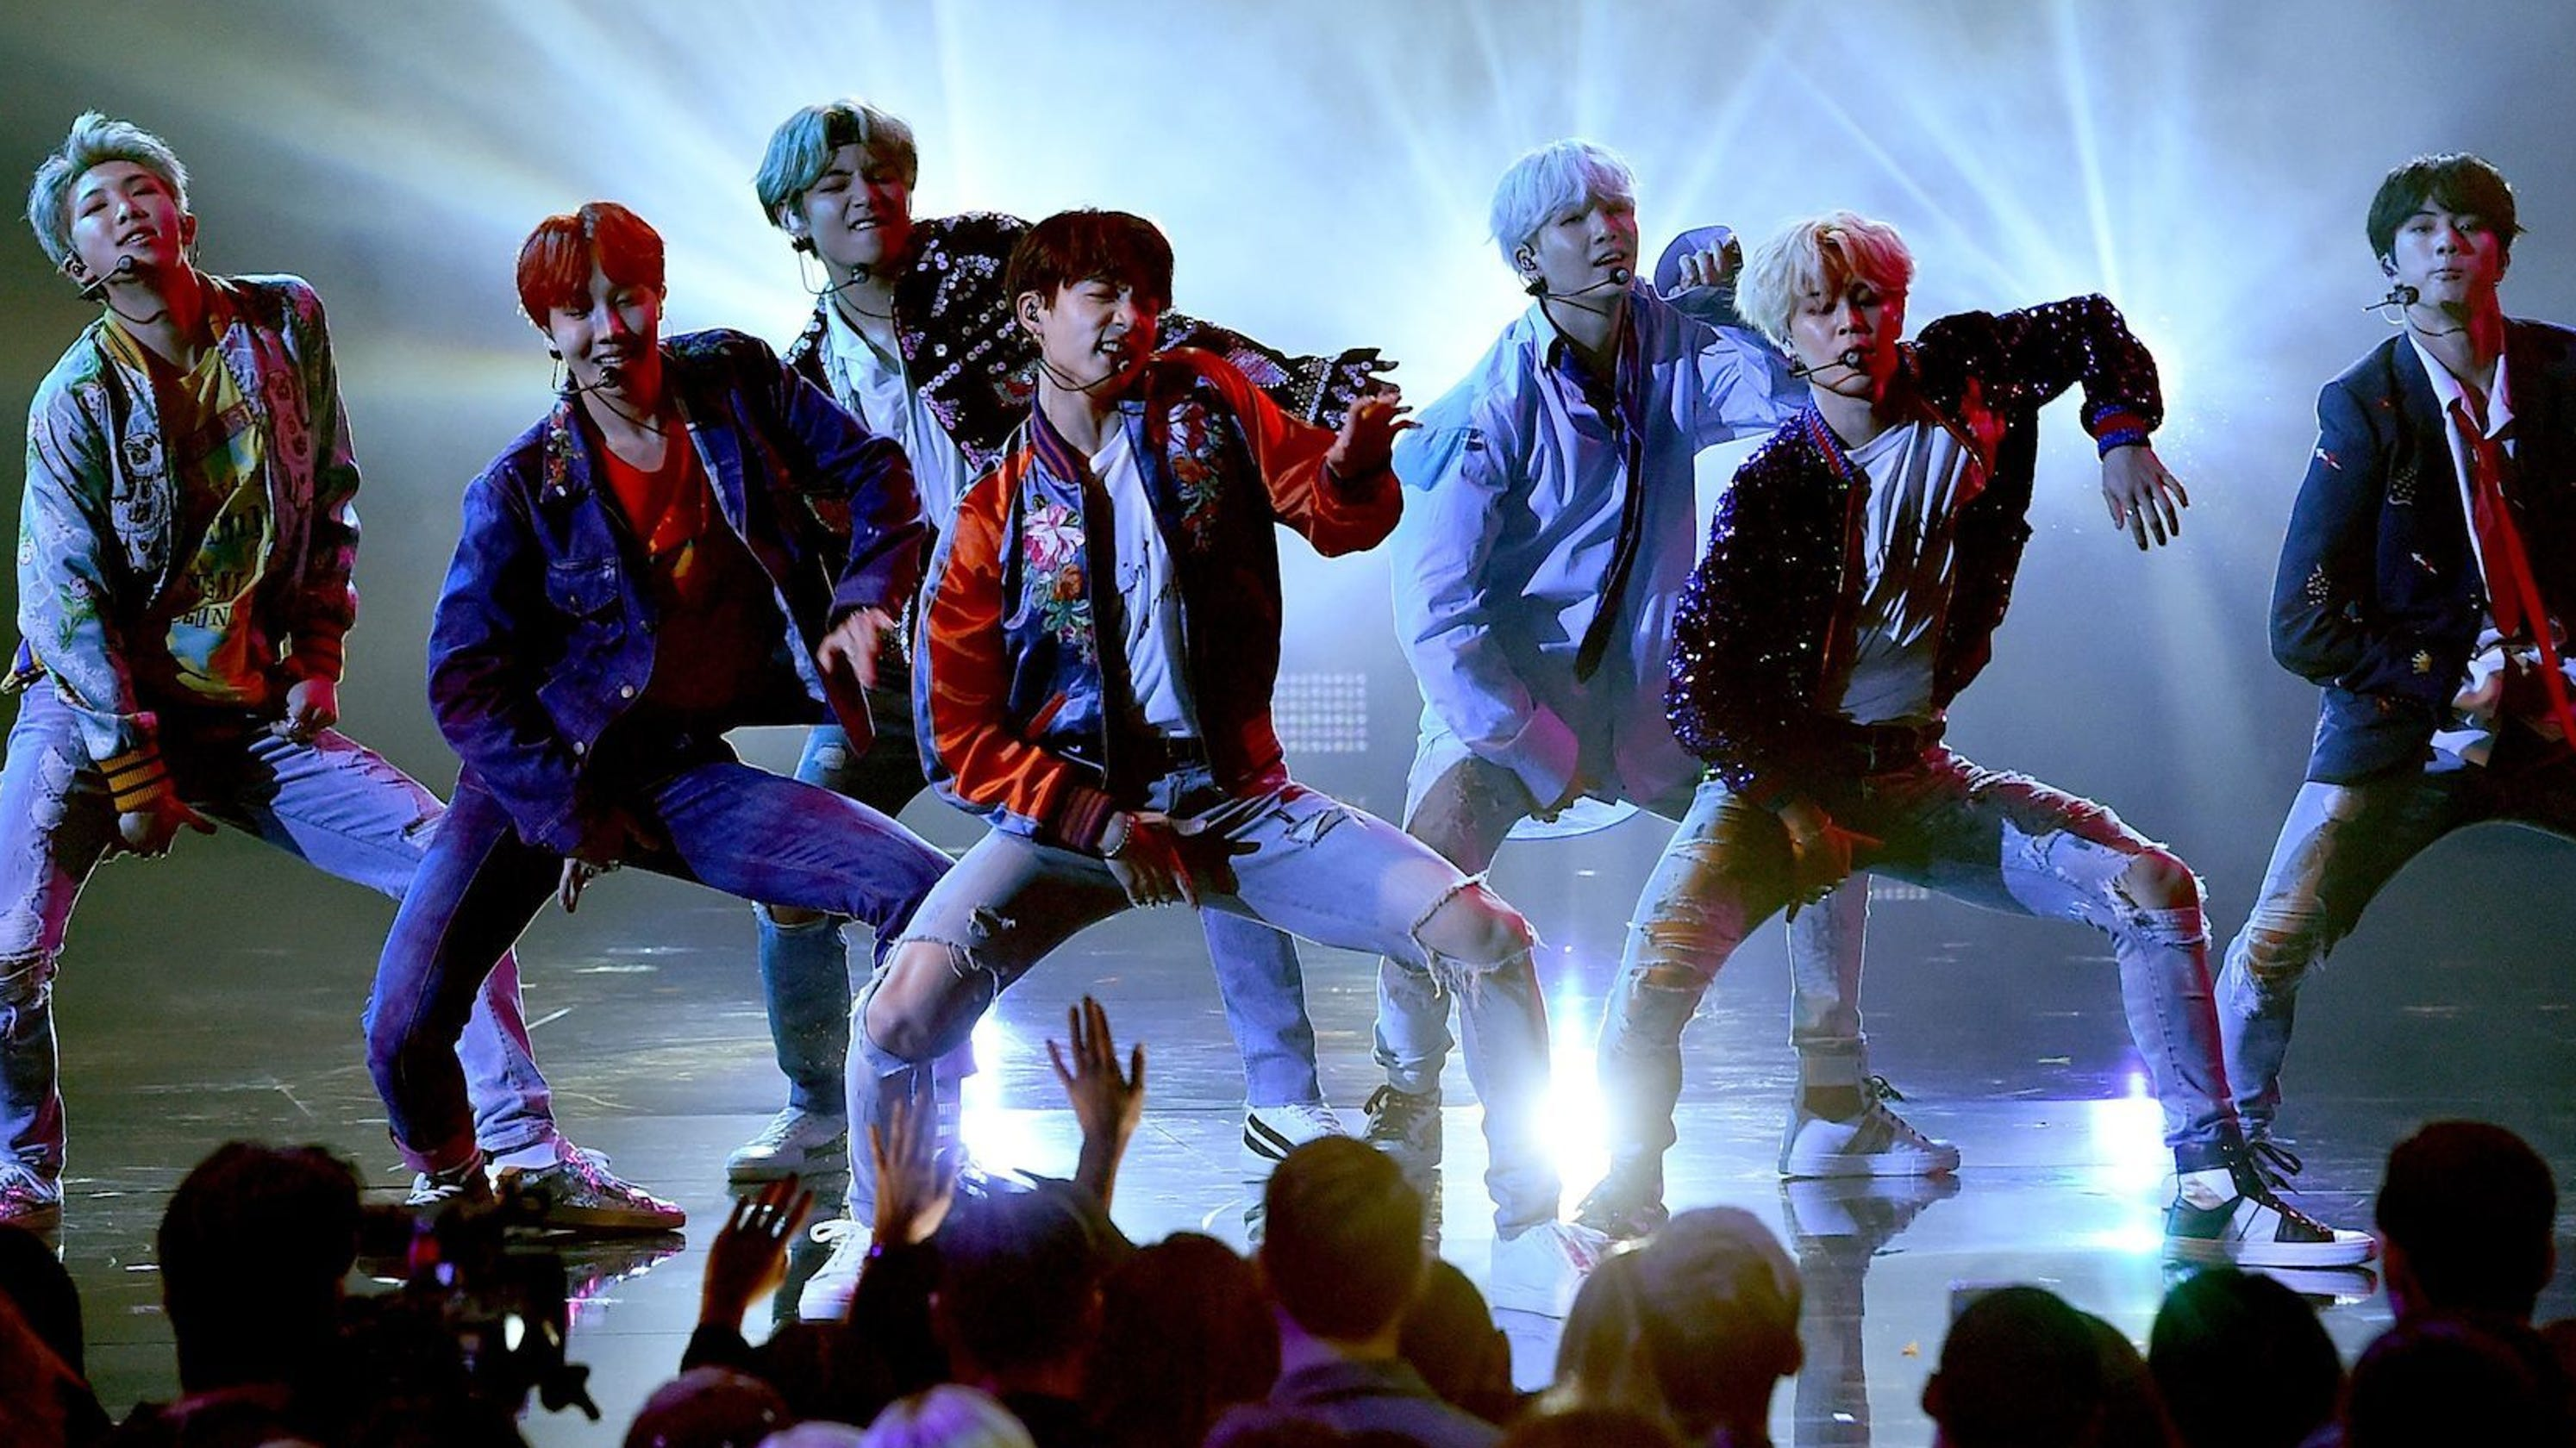 BTS at MetLife Stadium: K-pop to make debut on the big Jersey stage